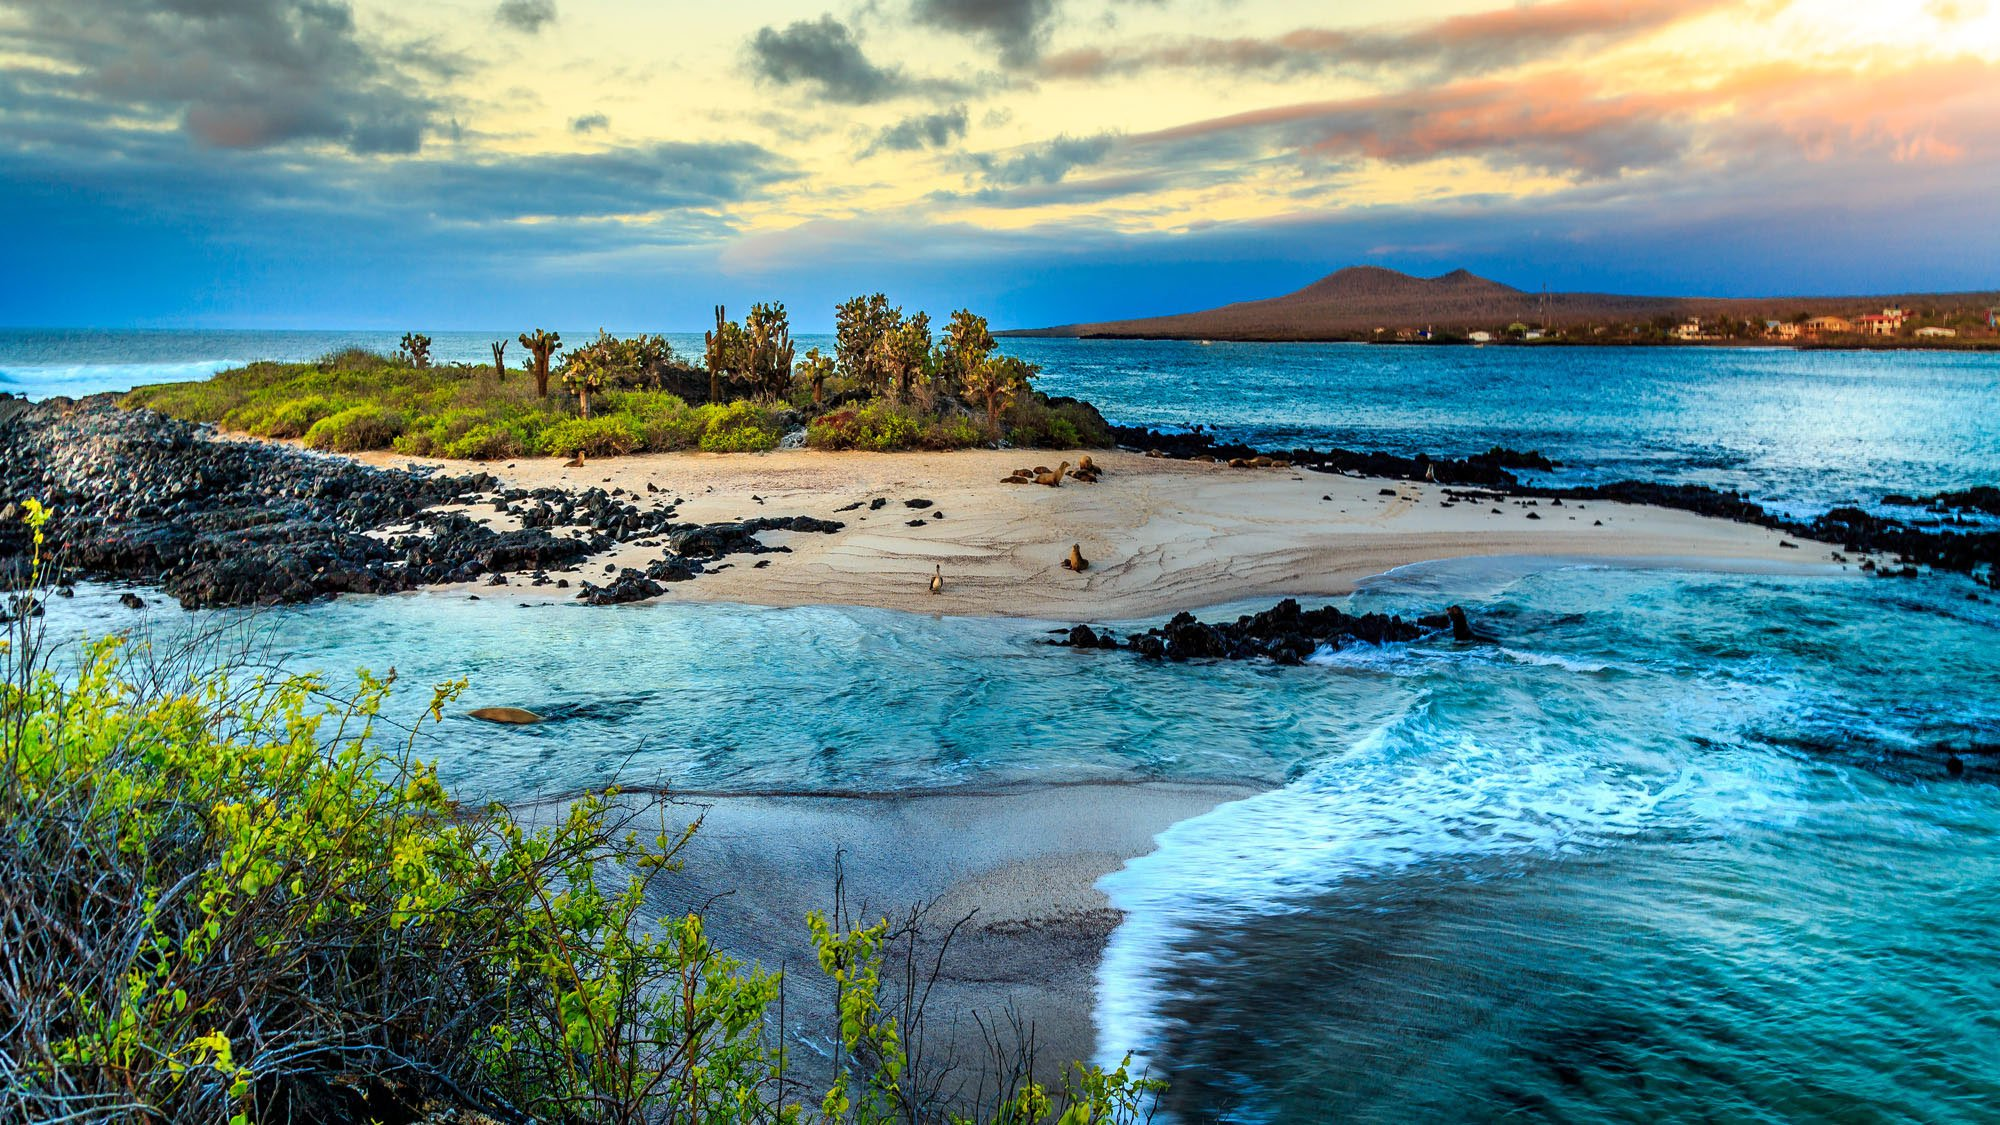 Galapagos islands attractive places for tourism gets ready for Best pictures